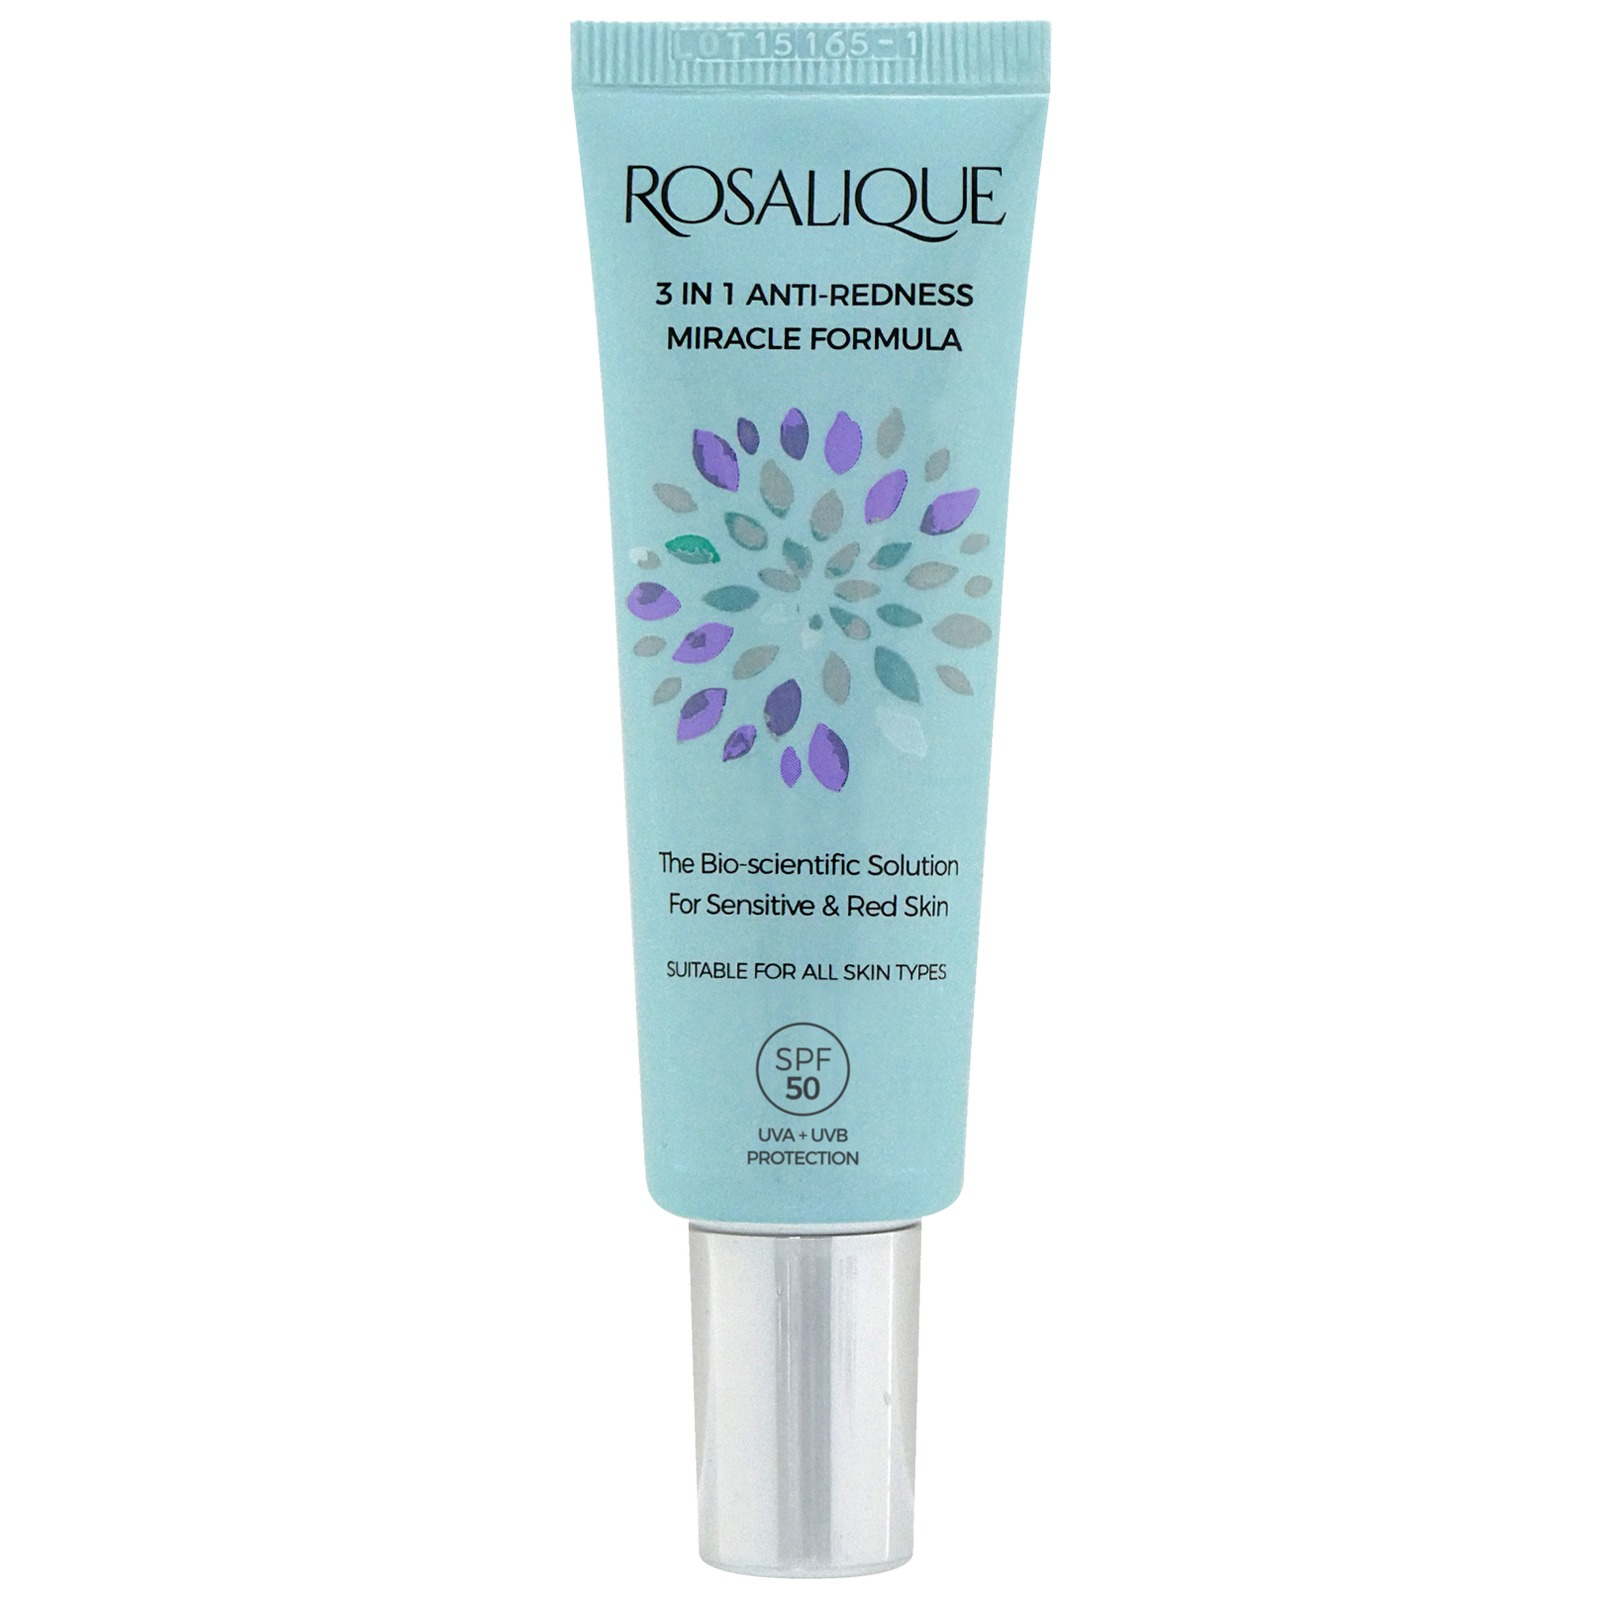 Rosalique Skincare 3 in 1 Anti-Redness Miracle Formula SPF25 30ml